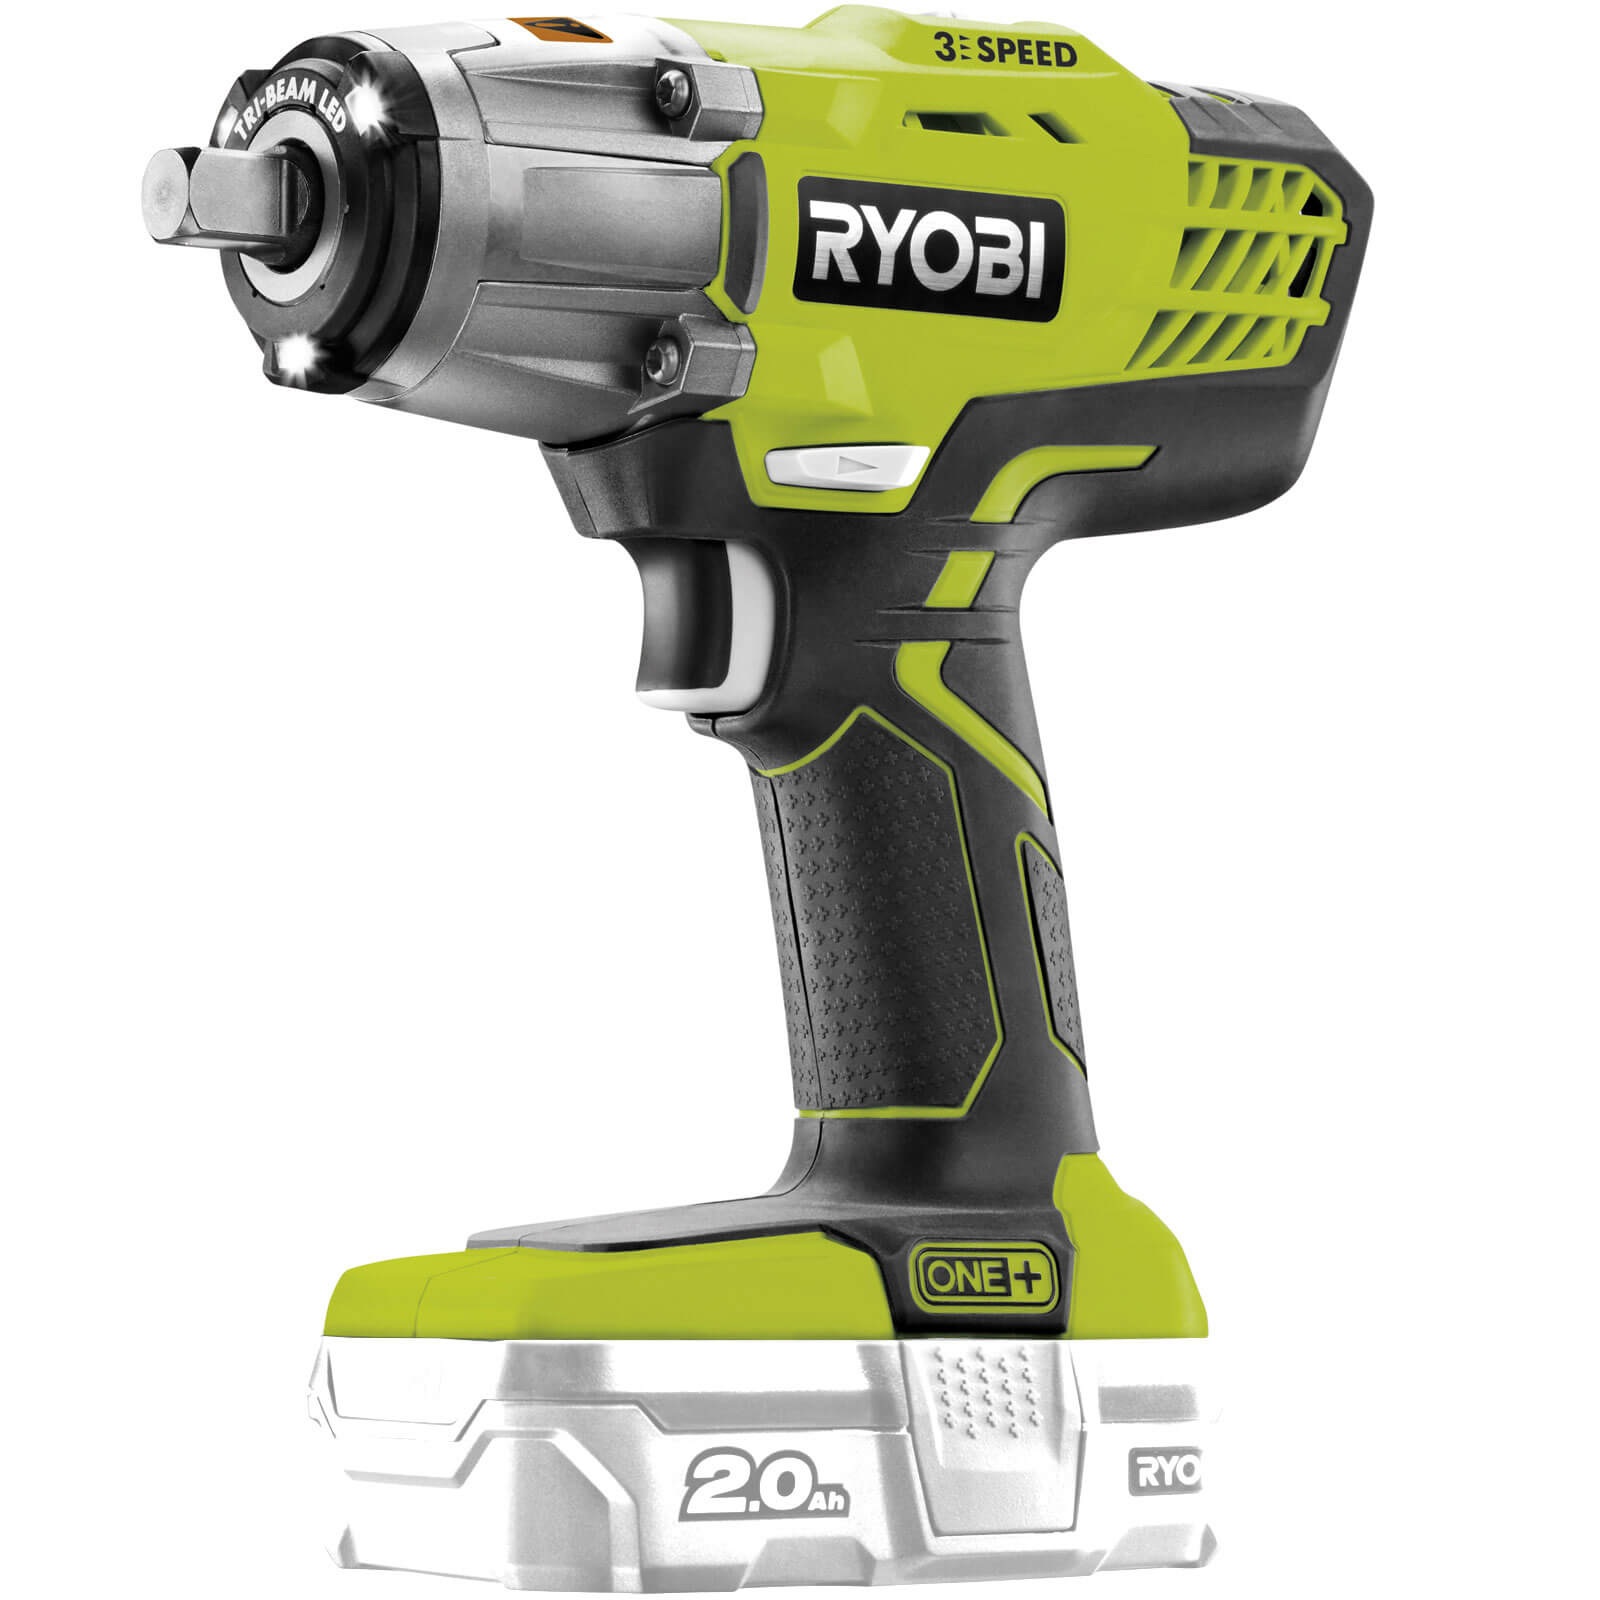 ryobi 5133002436 r18iw3 0 one 18v 3 speed impact wrench. Black Bedroom Furniture Sets. Home Design Ideas